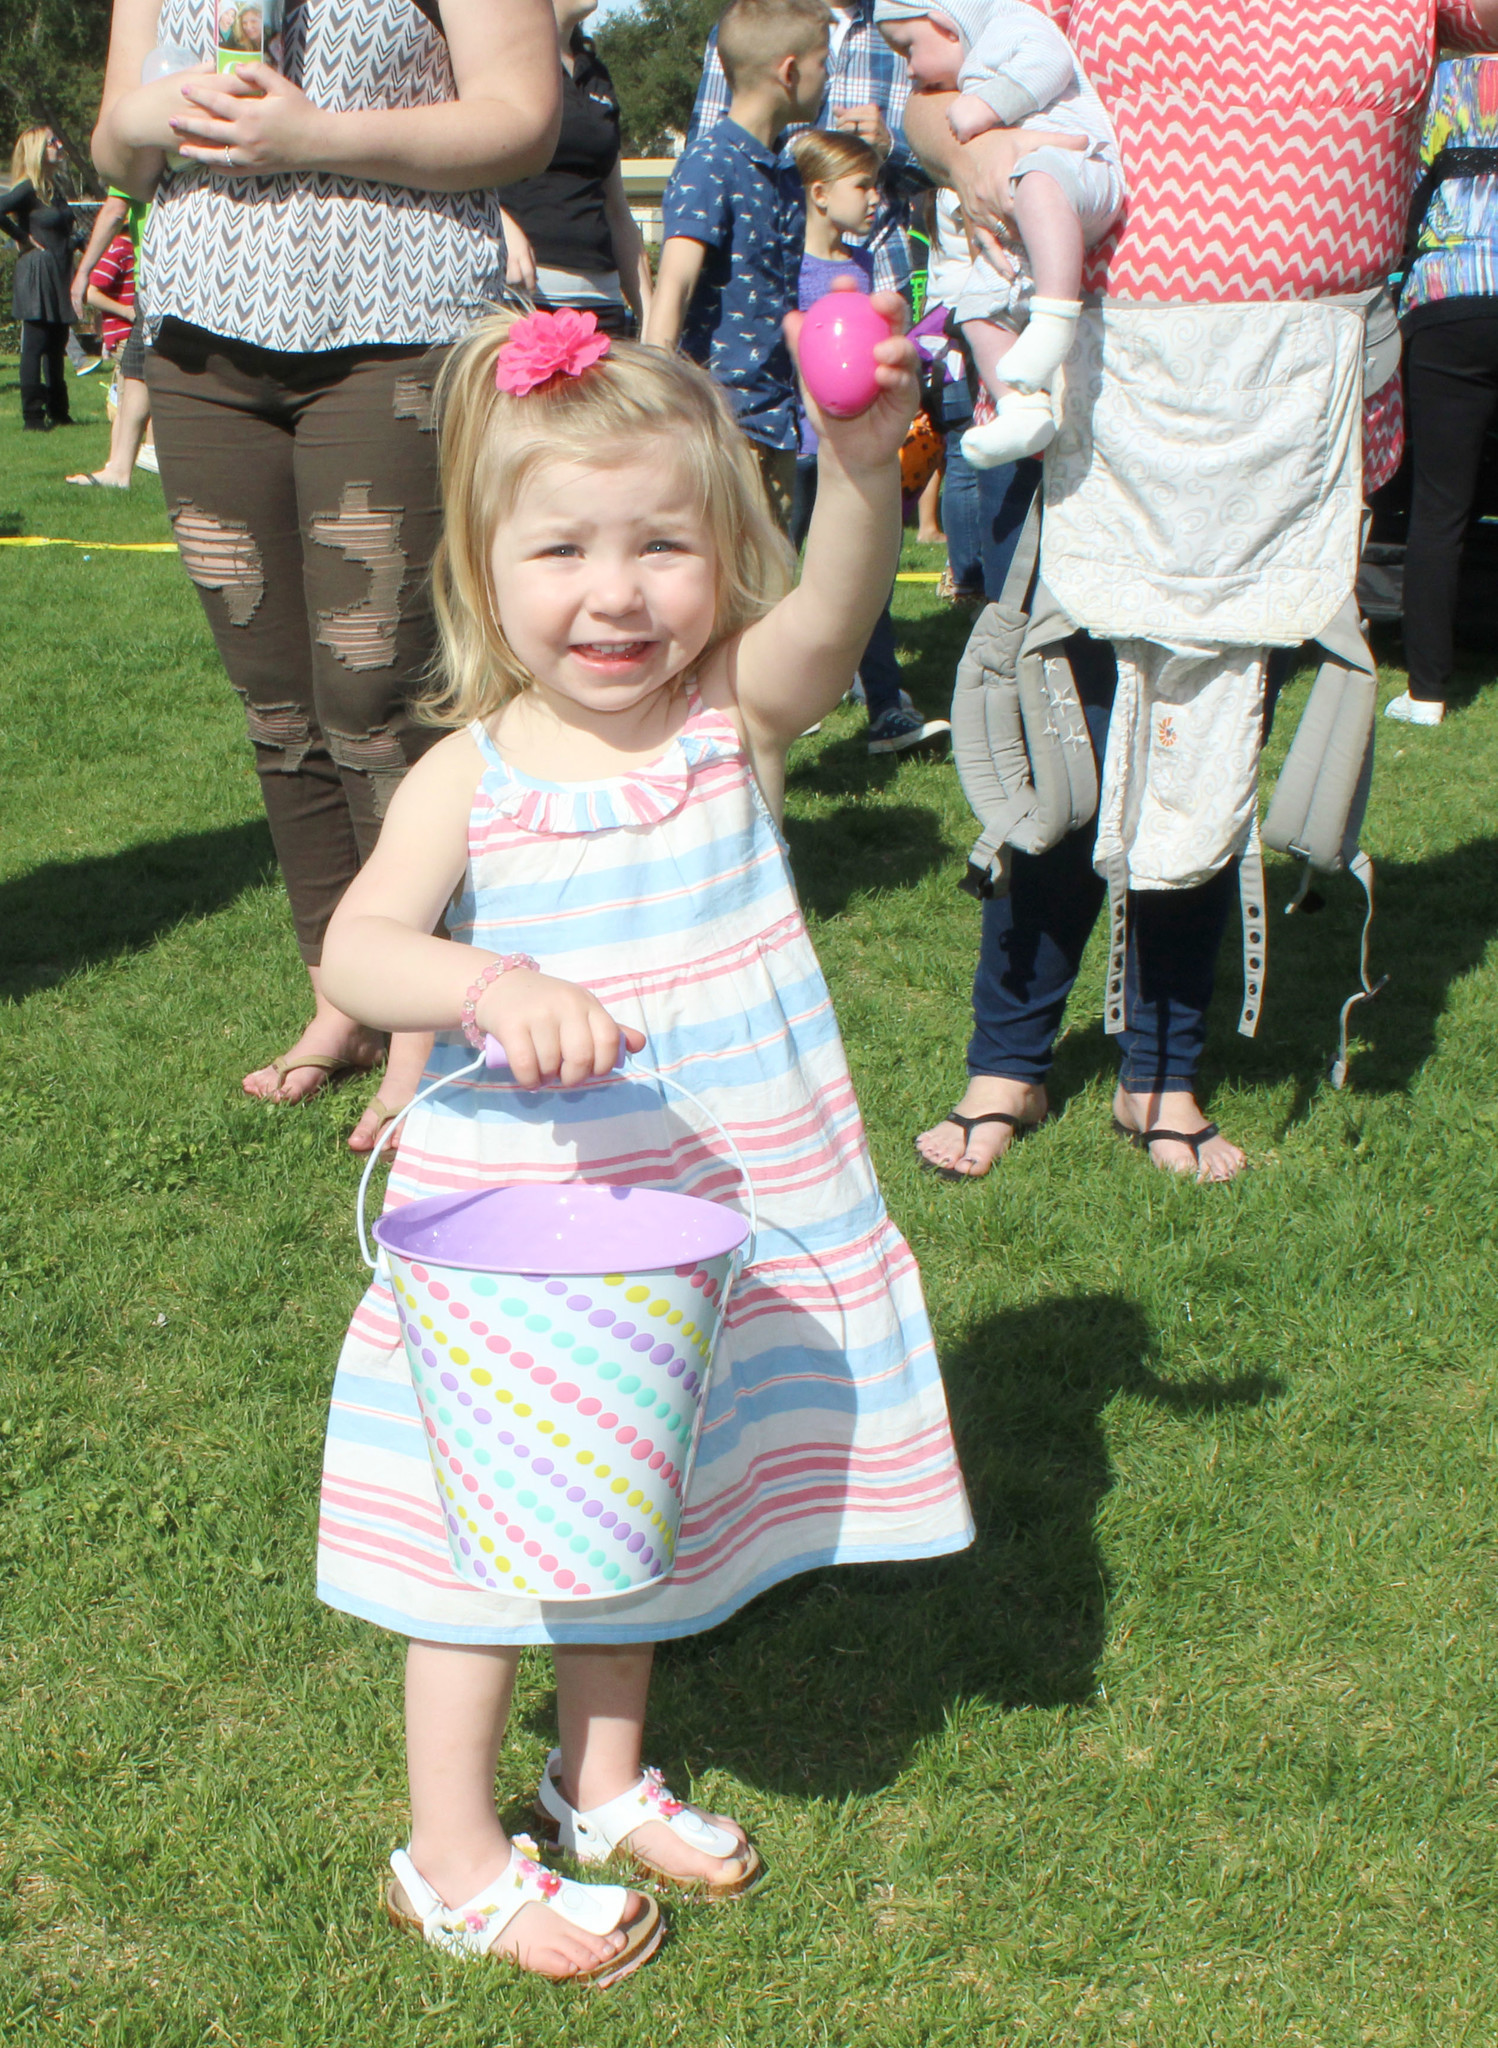 An excited Brooklynn Percival, 2, shows one of the eggs she gathered during the hunt.